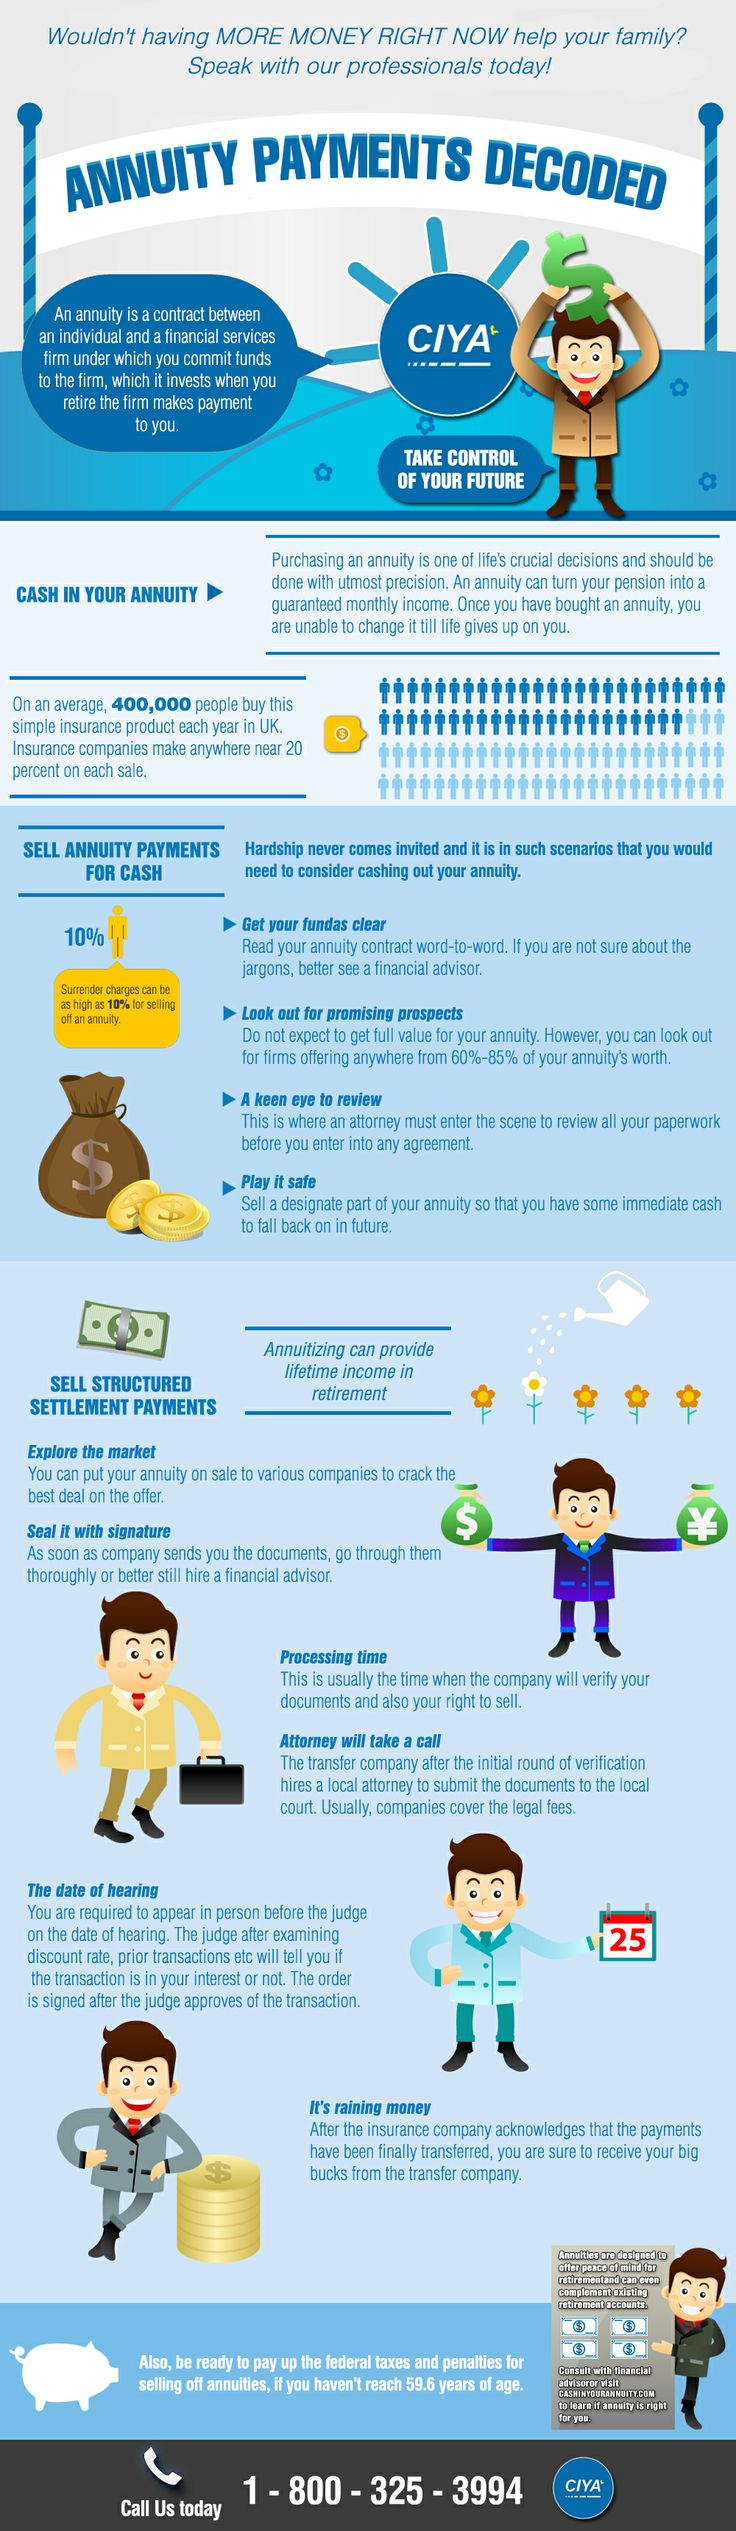 Annuity payments decoded